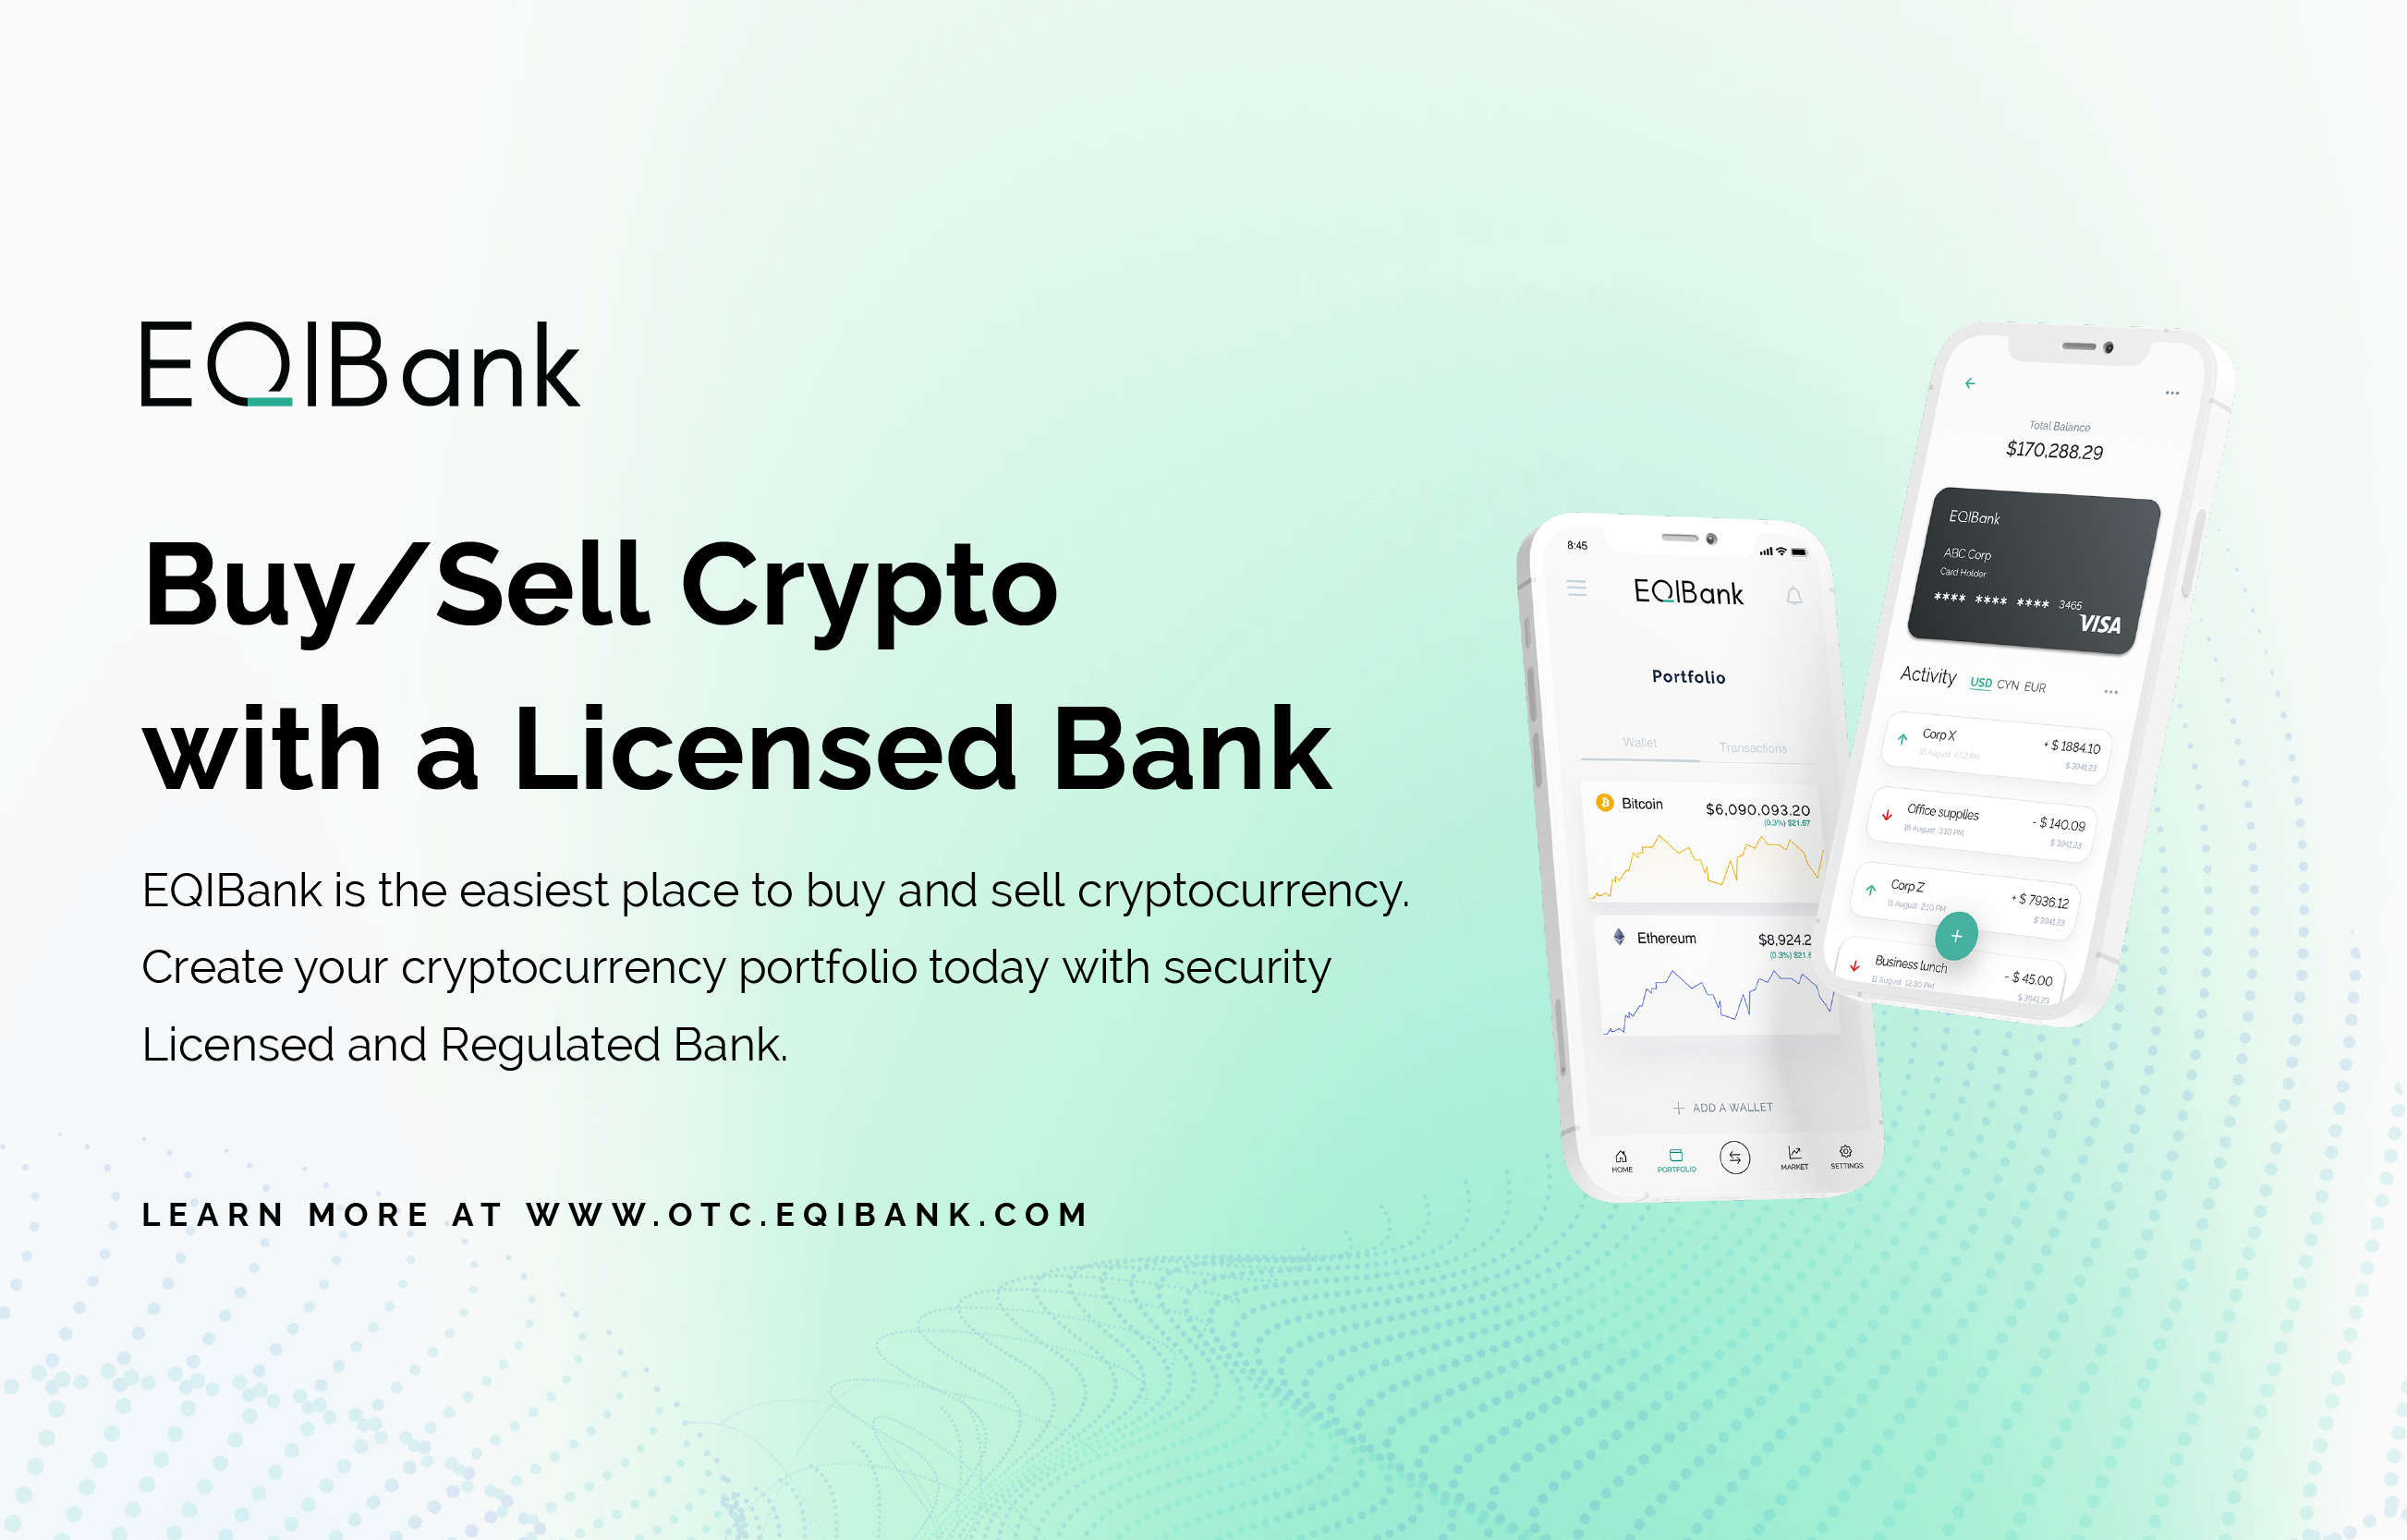 EQIBank OTC Buy and Sell Your Cryptocurrency From a Licensed Bank